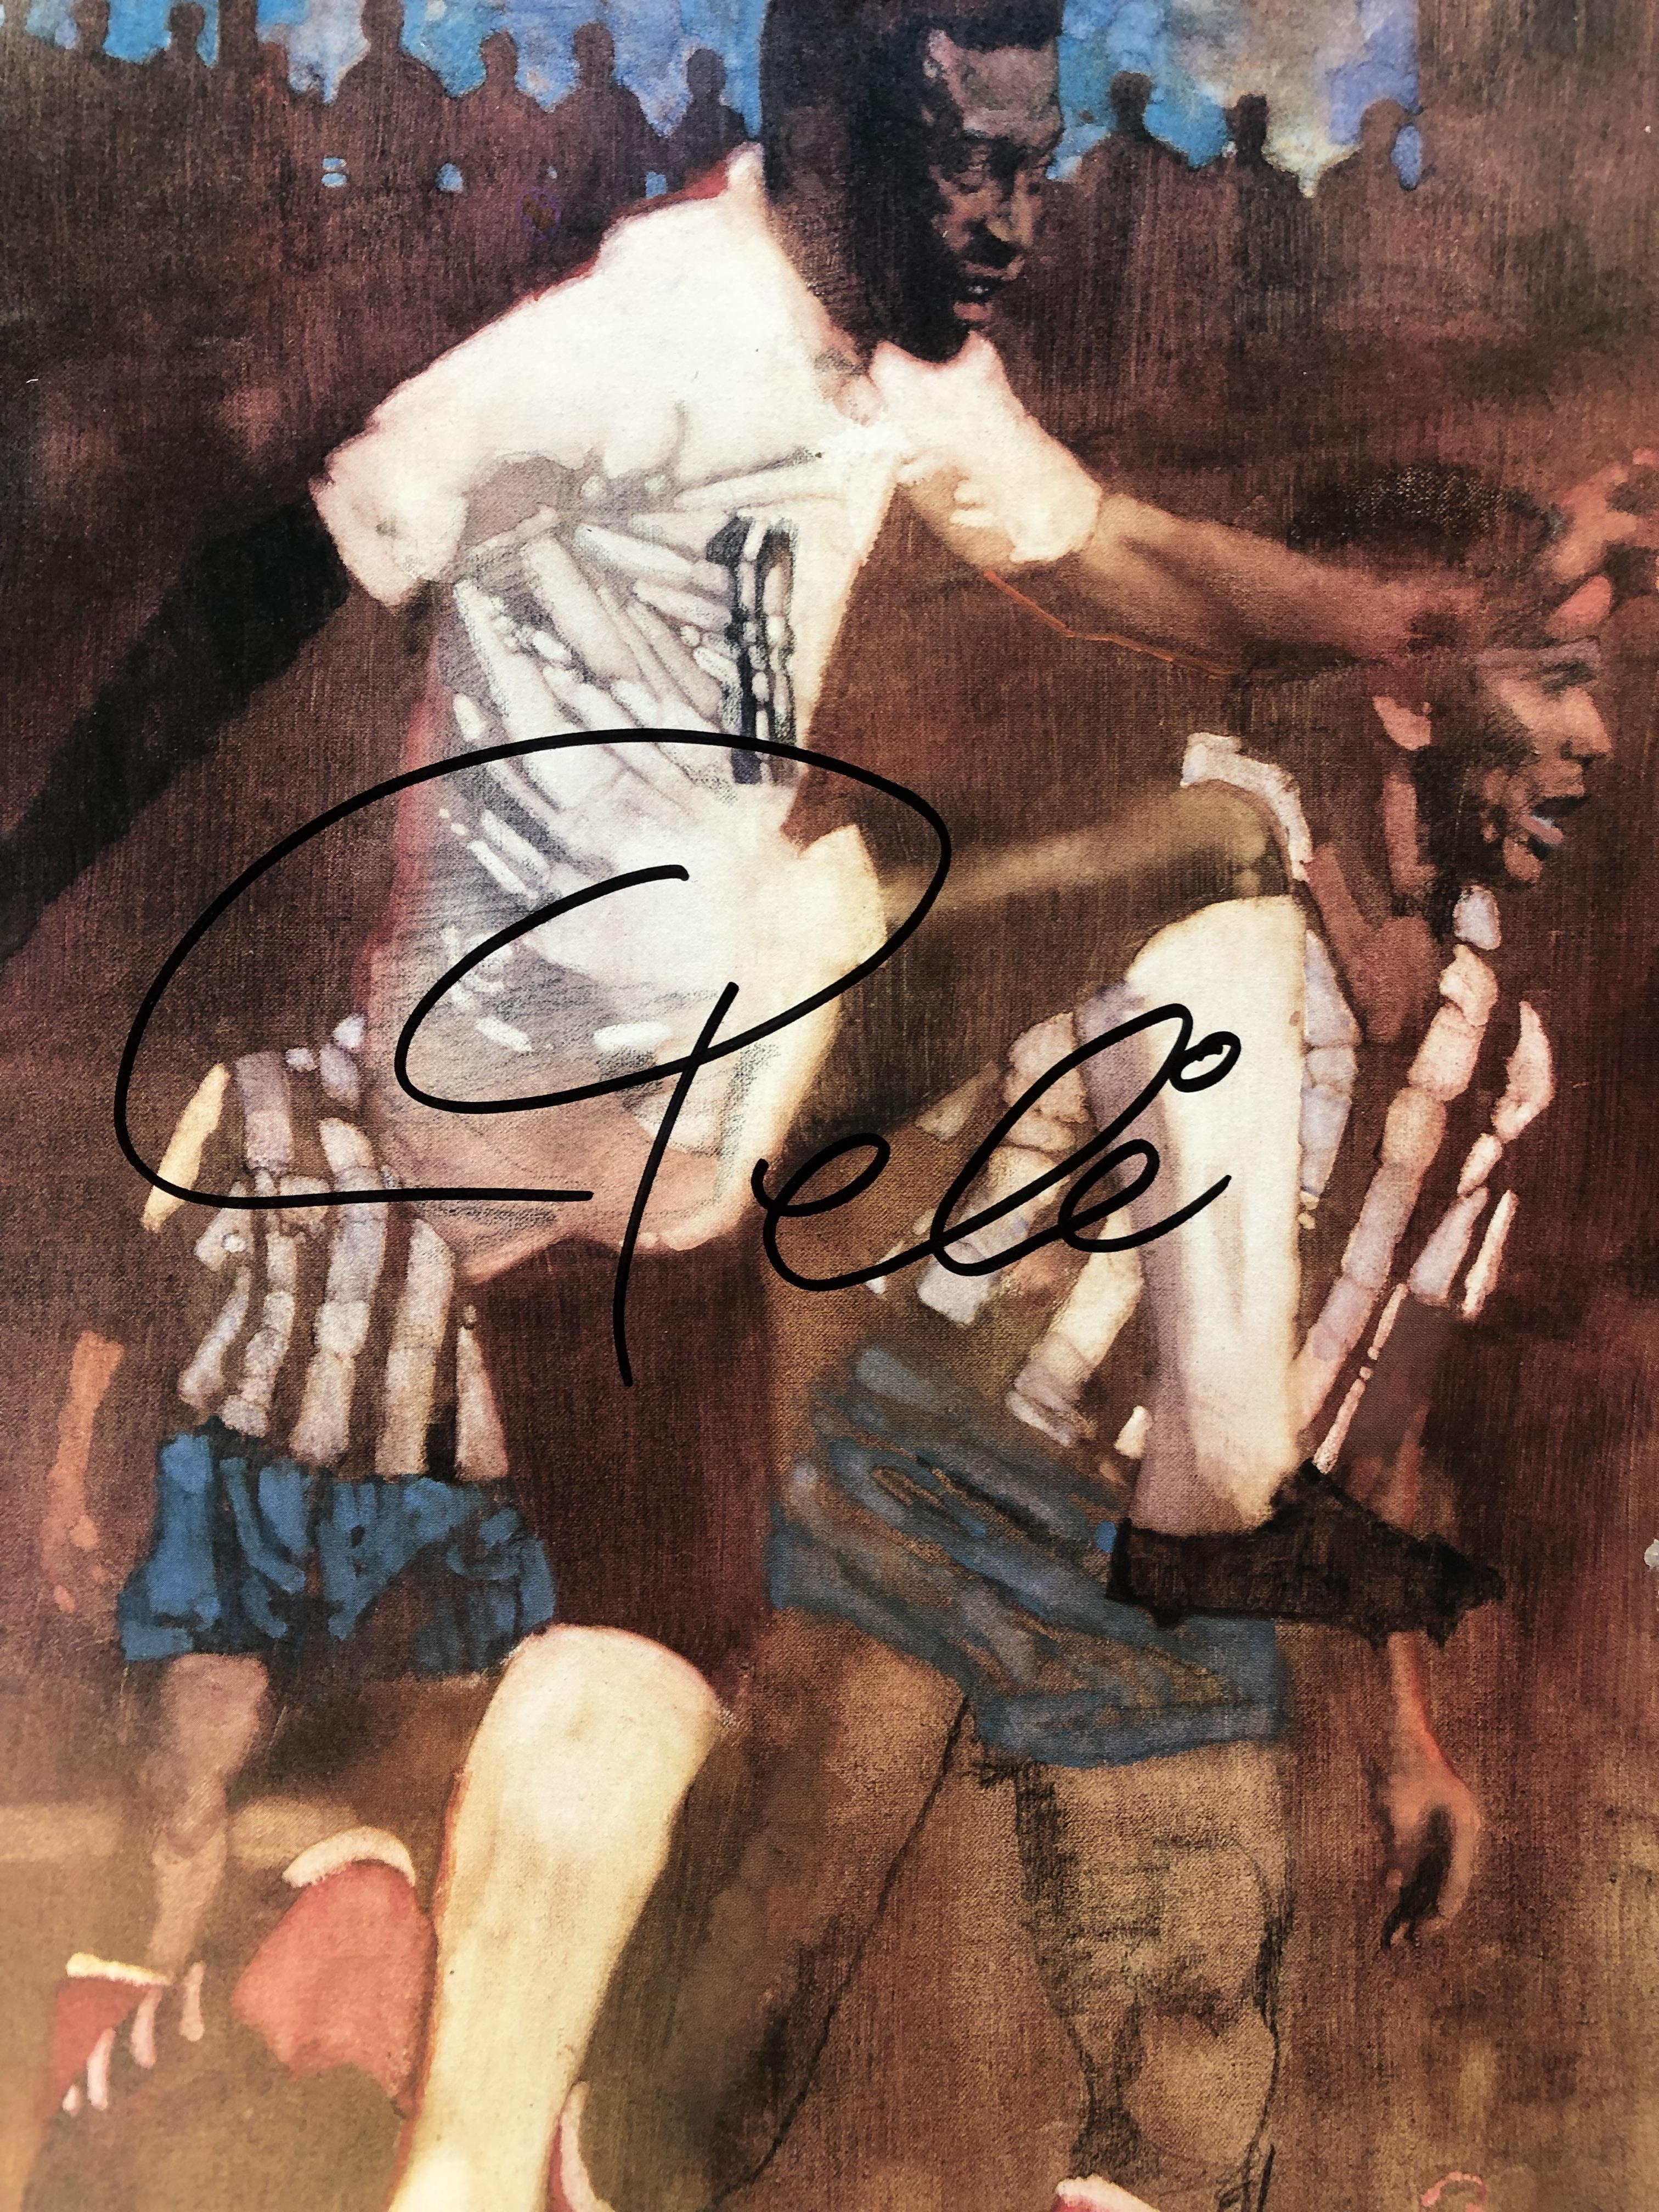 Framed painting and autographed by Pele! The king of soccer!